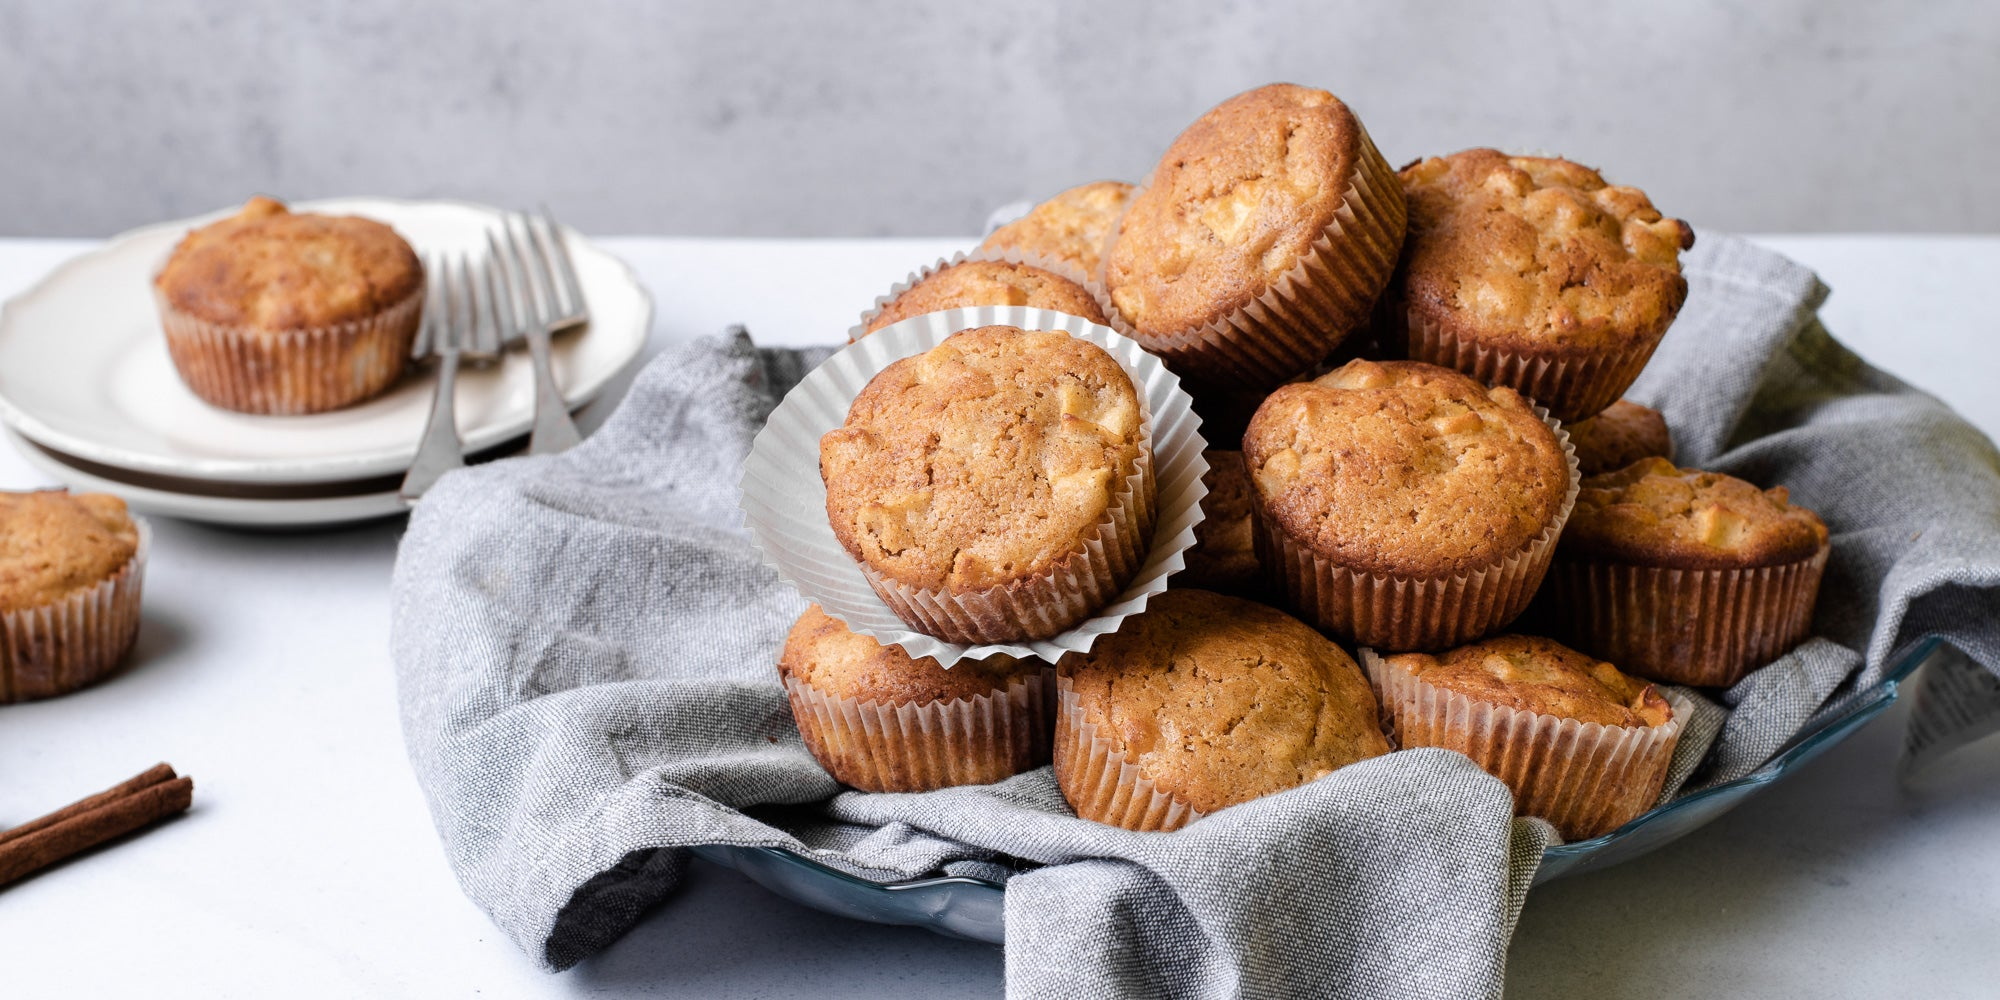 A pile of Calorie Conscious Apple & Cinnamon Muffins on a grey cloth, with a muffin on a plate with forks in the background